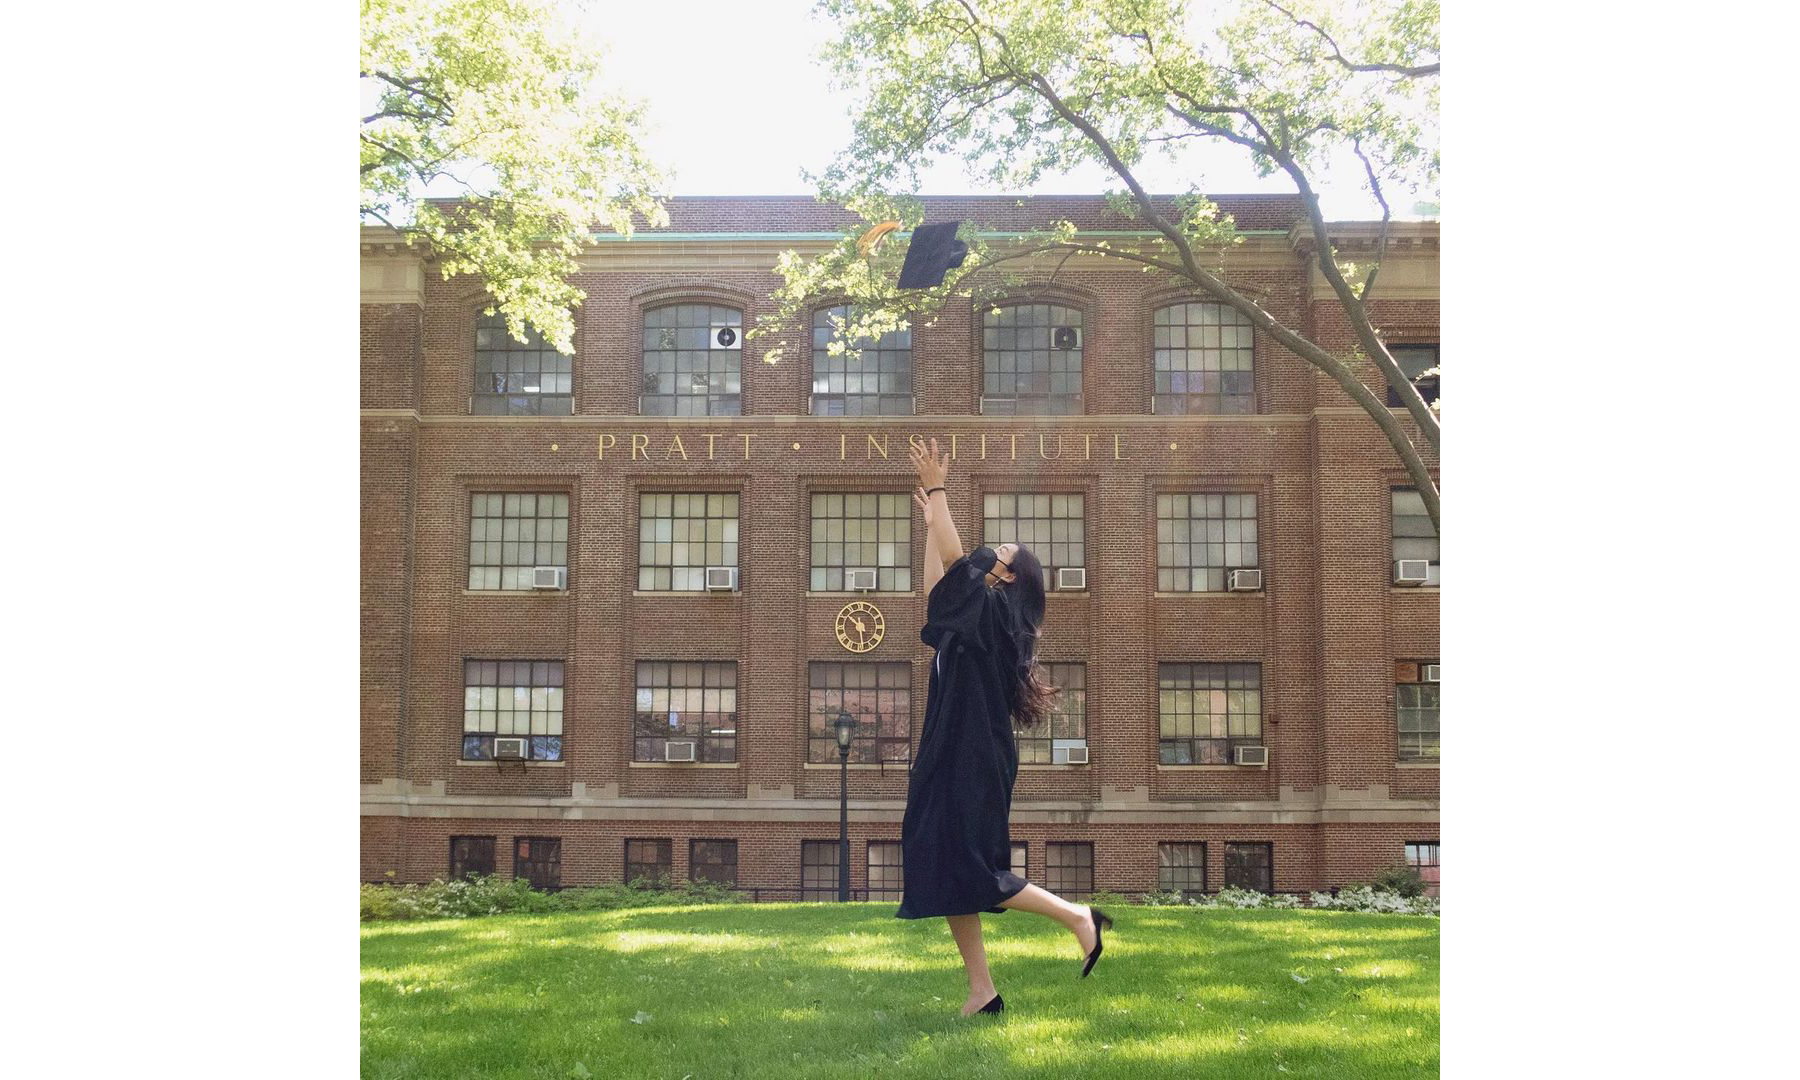 A Pratt graduate in her graduation gown is on campus and throwing her graduation cap into the air